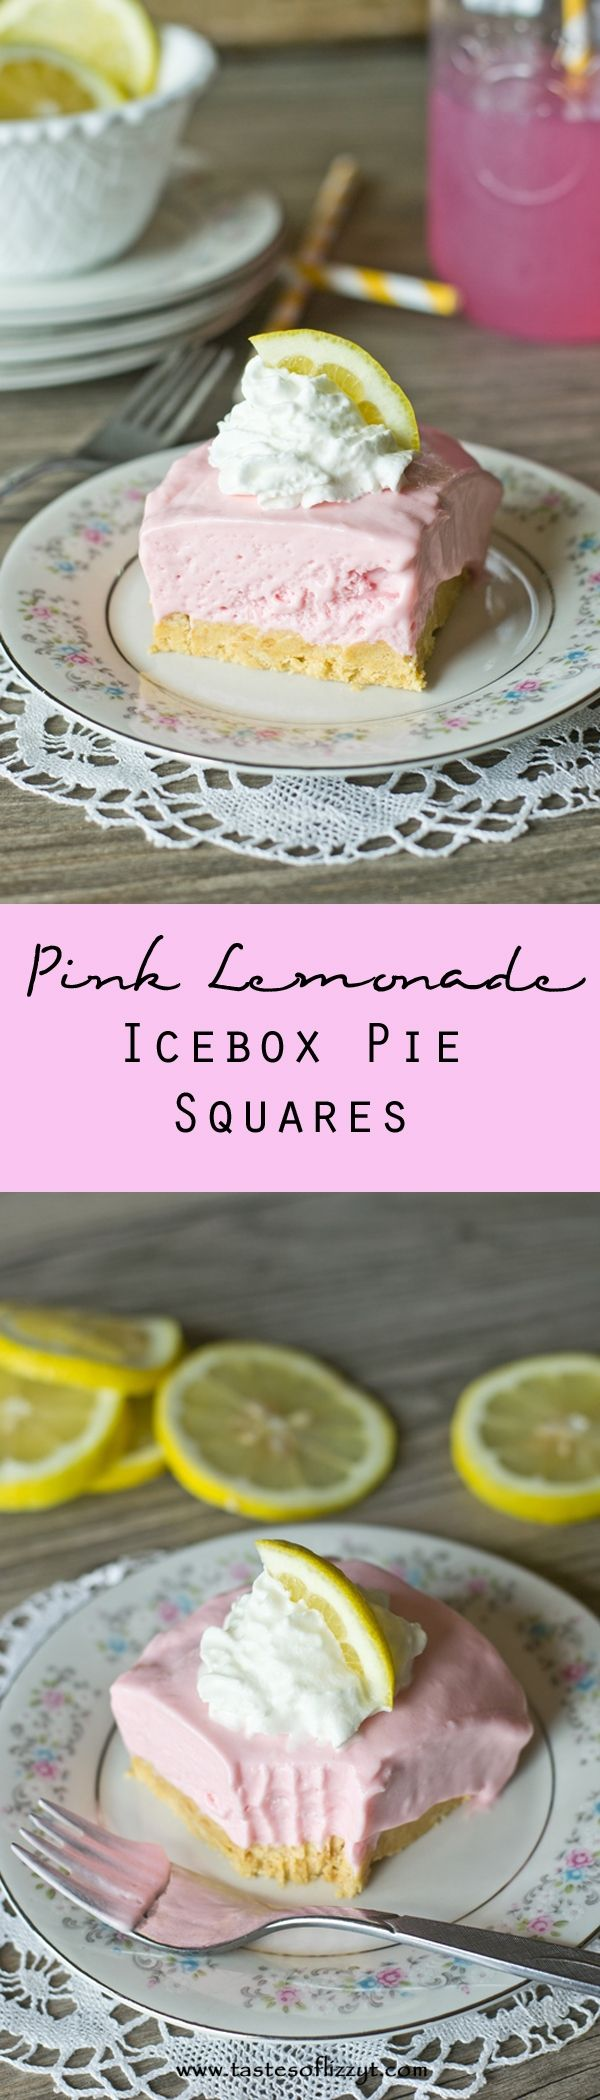 Pink Lemonade Icebox Pie Squares. This no-bake Pink Lemonade Icebox Pie Squares are cool, light and refreshing.